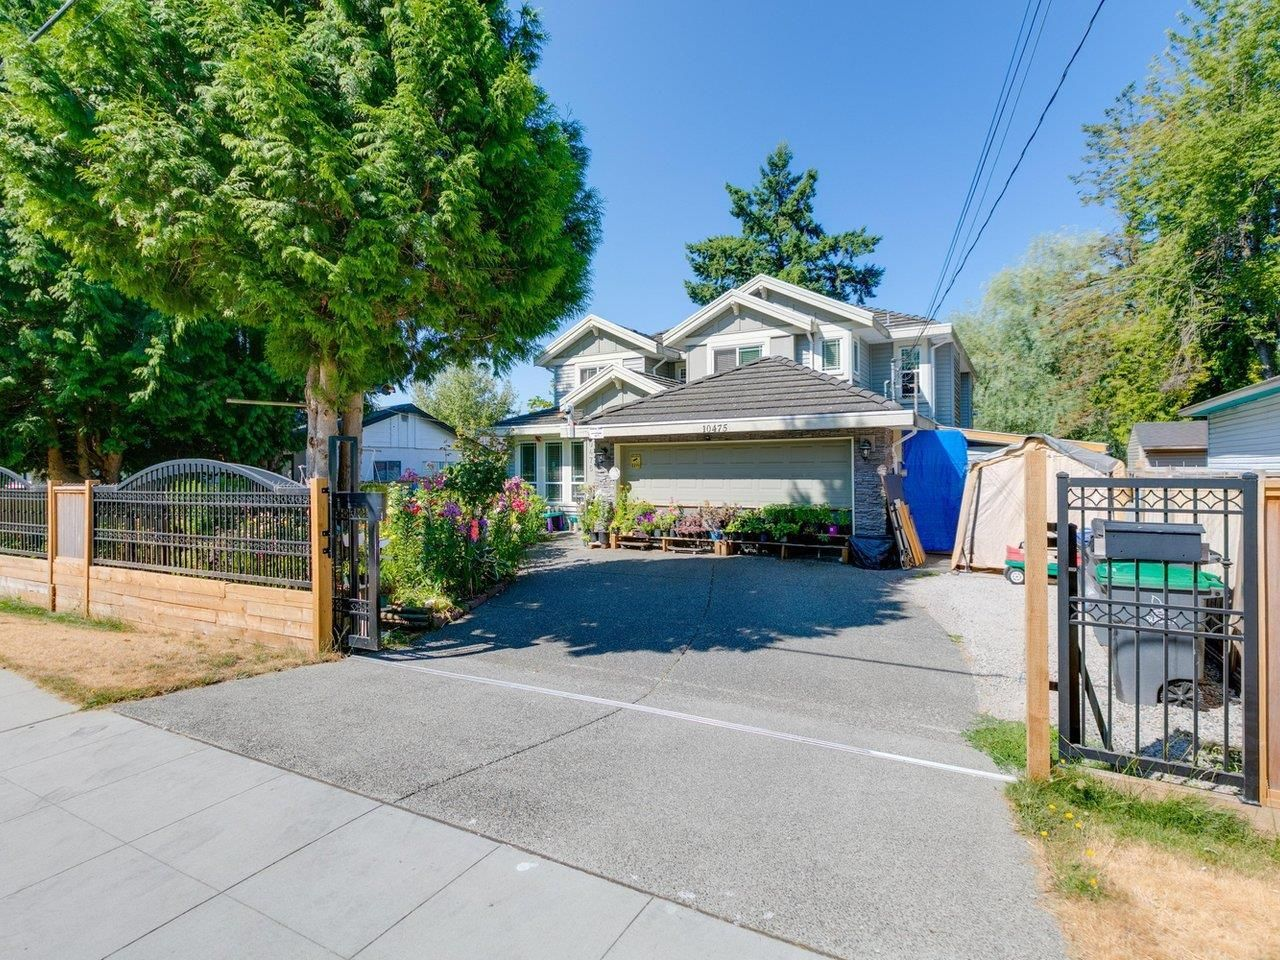 Main Photo: 10475 138A Street in Surrey: Whalley House for sale (North Surrey)  : MLS®# R2606239